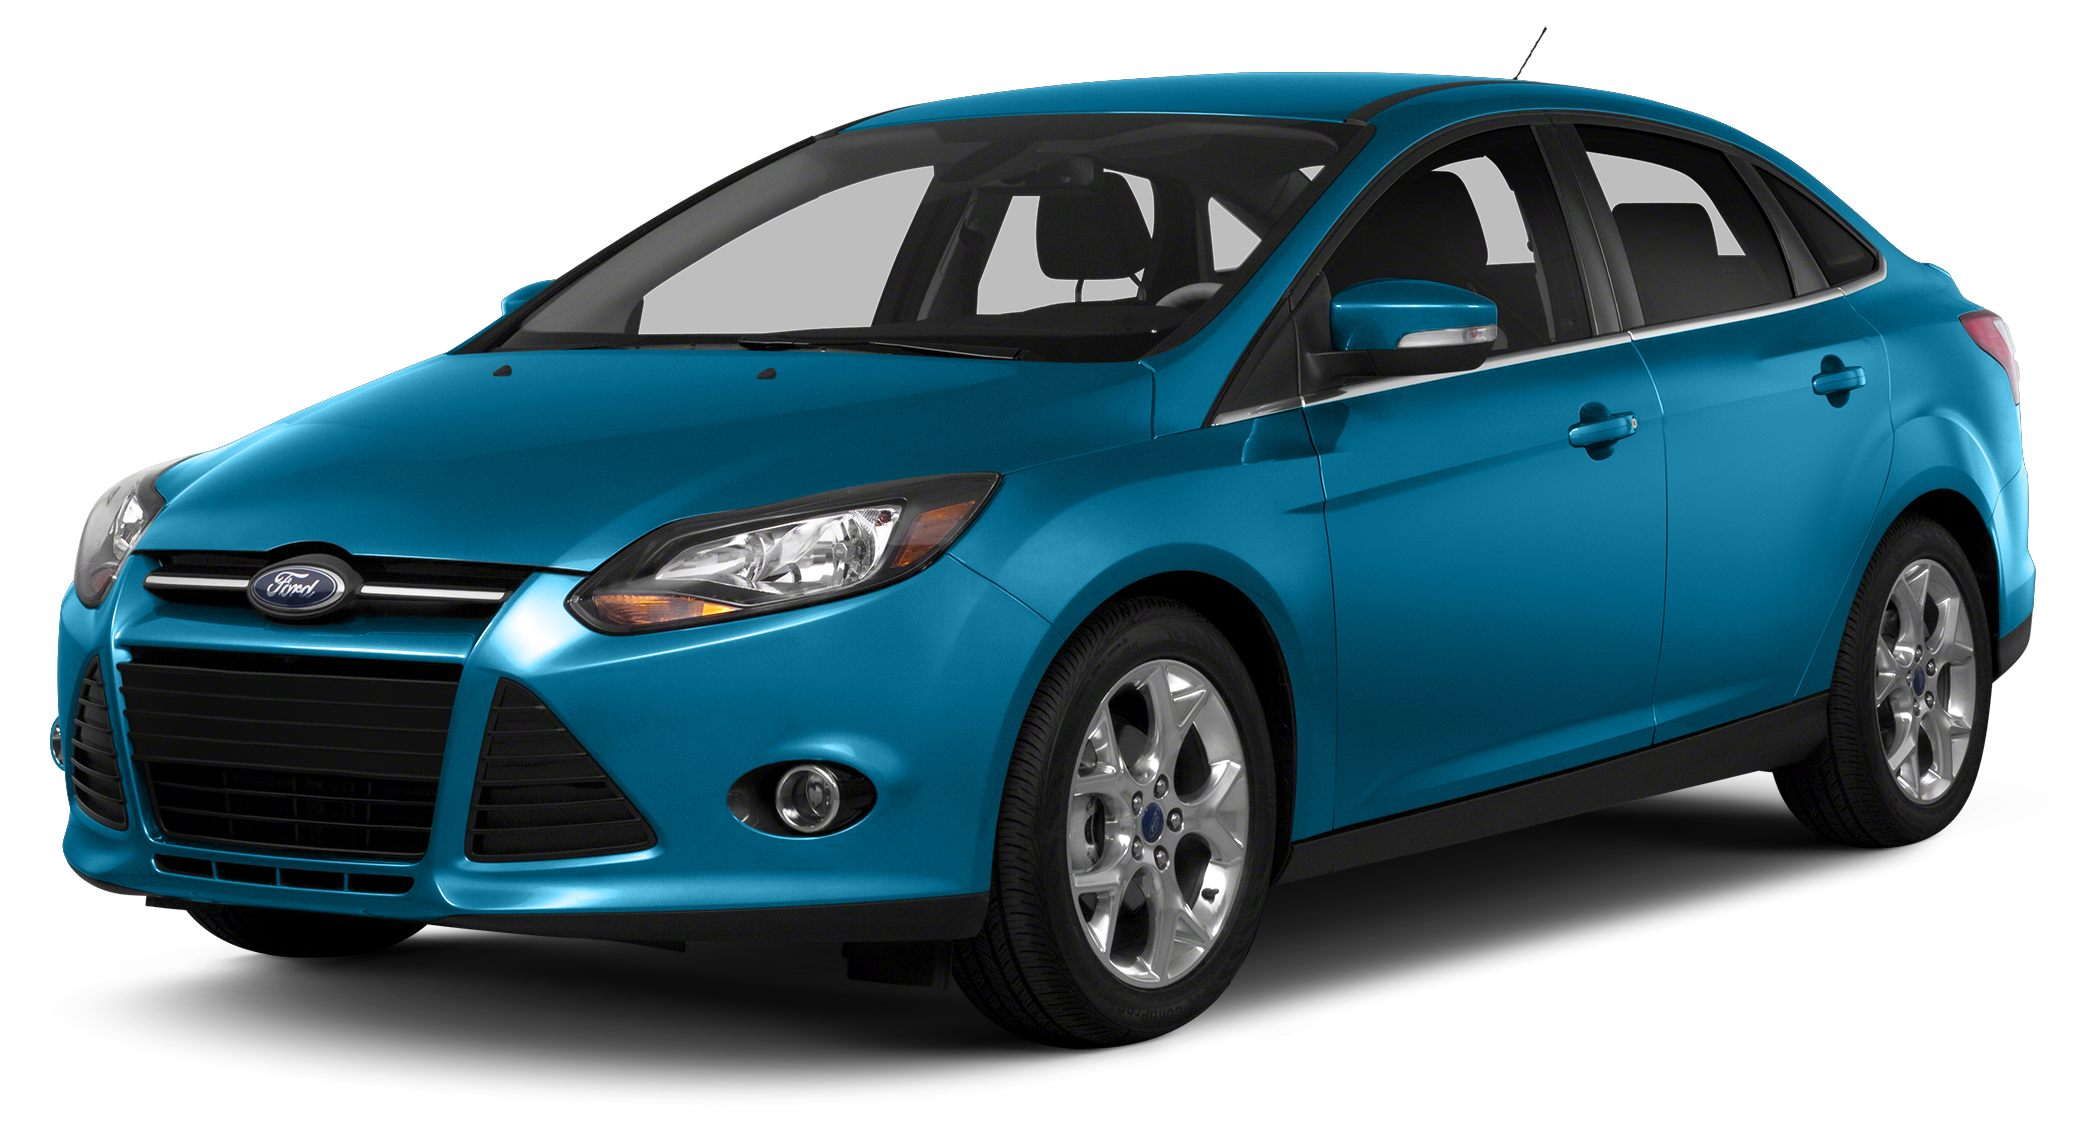 2014 Ford Focus SE Auto Check 1 Owner Ford Certified Pre-Owned 7 YEAR 100000 MILE FORD PRE-OWNE